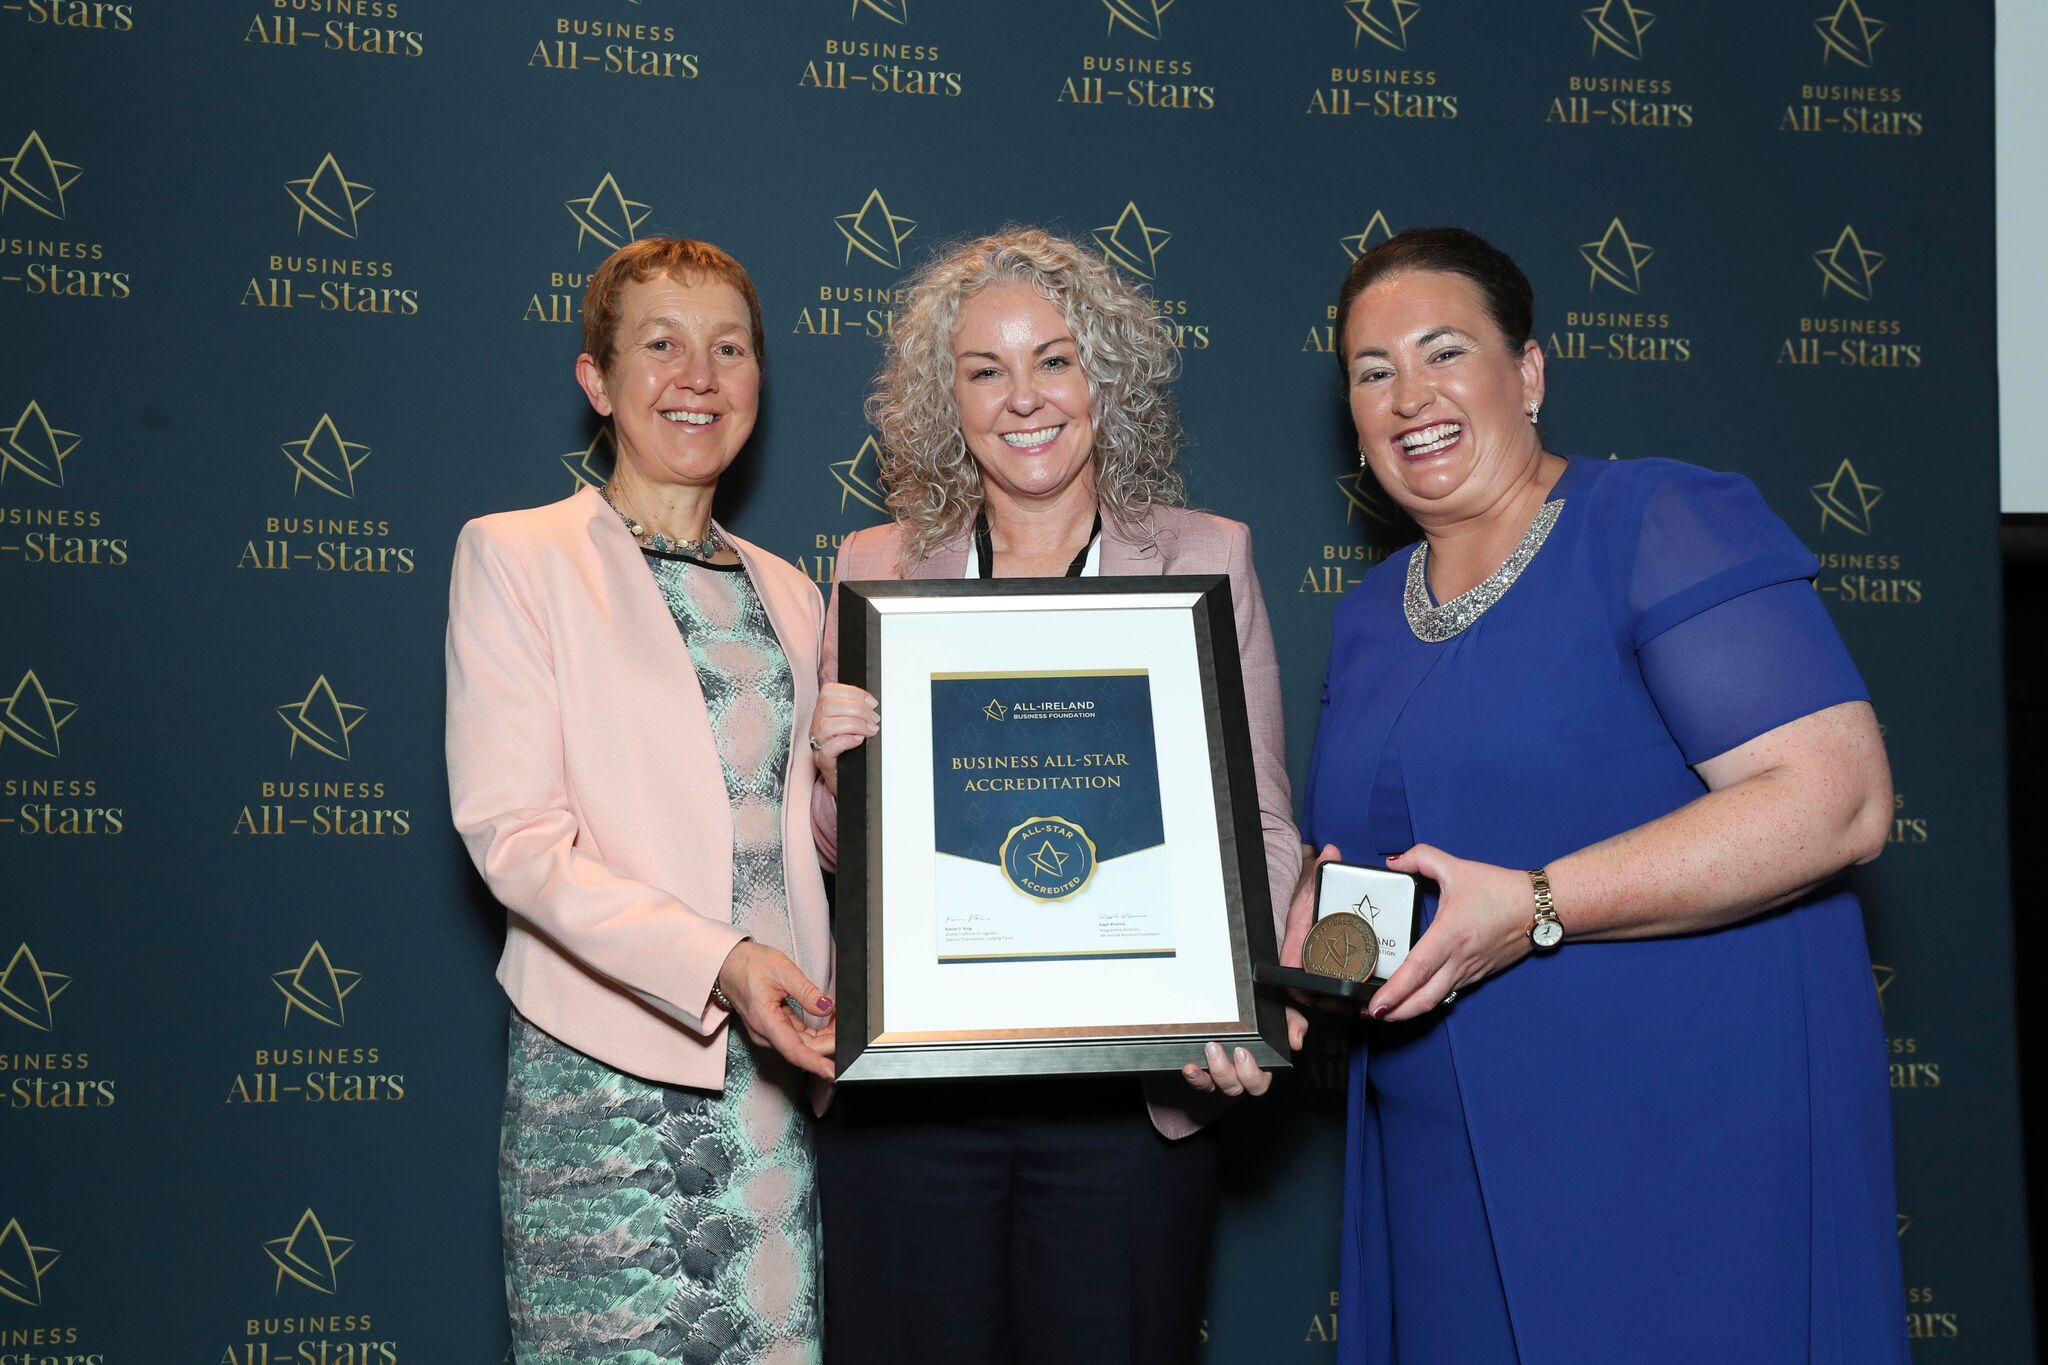 Louise Murphy - Cyc-LOK receiving Business All-Star Accreditation at Croke Park from Dr Briga Hynes, Kemmy Business School, University of Limerick and Elaine Carroll CEO, All-Ireland Business Foundation.